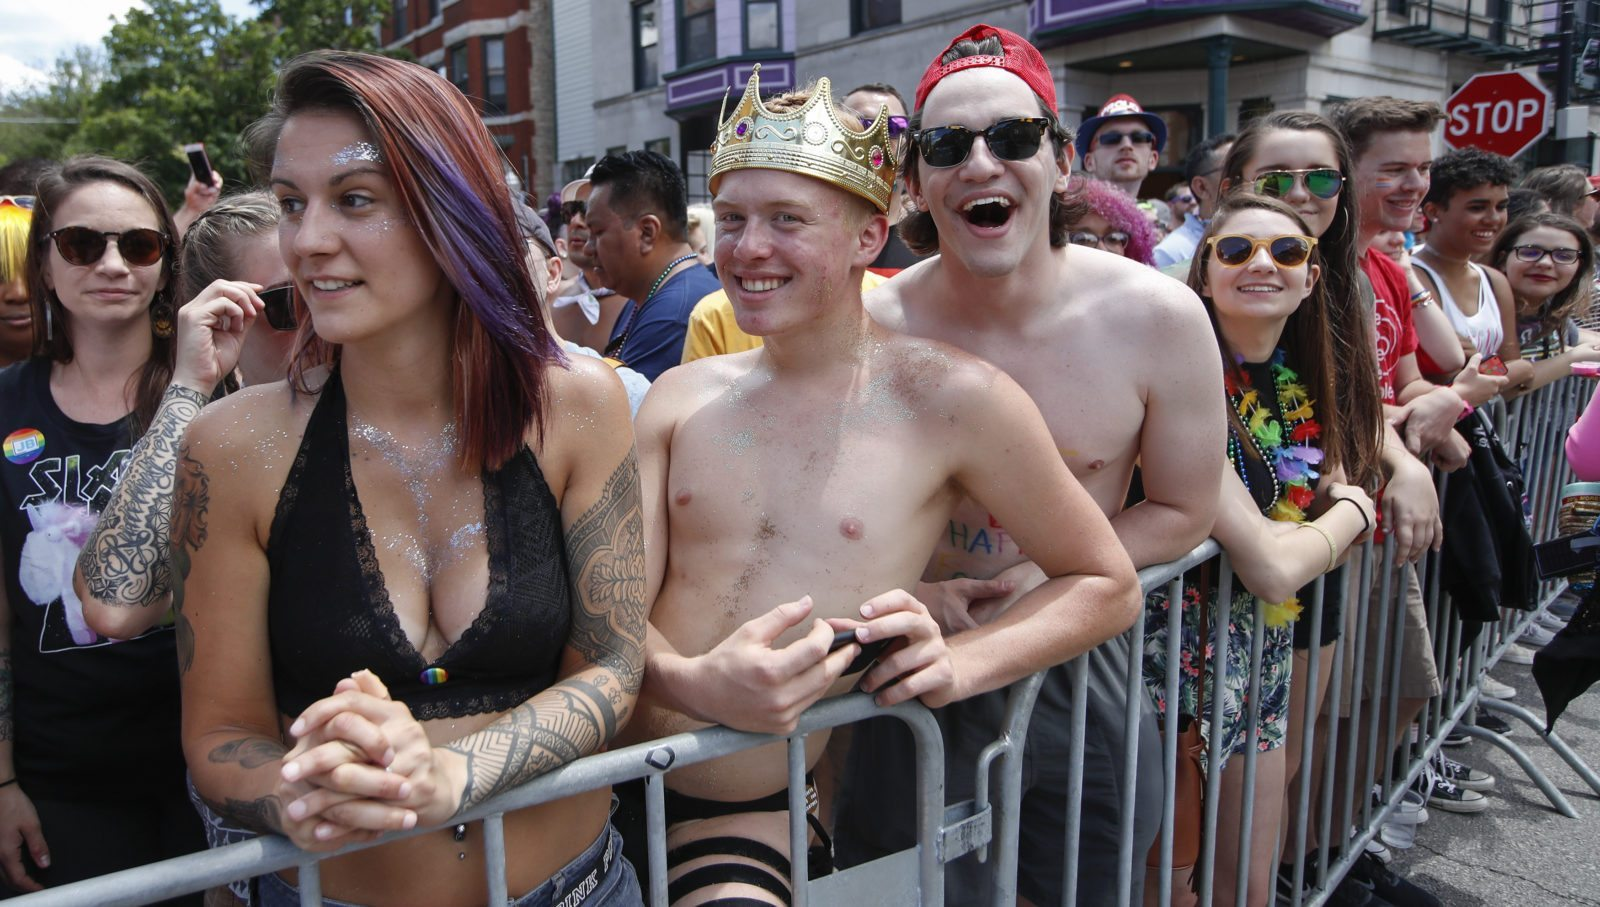 People celebrate the 48th annual Gay and Lesbian Pride Parade on June 25, 2017 in Chicago, Illinois. / AFP PHOTO / Kamil Krzaczynski (Photo credit should read KAMIL KRZACZYNSKI/AFP/Getty Images)